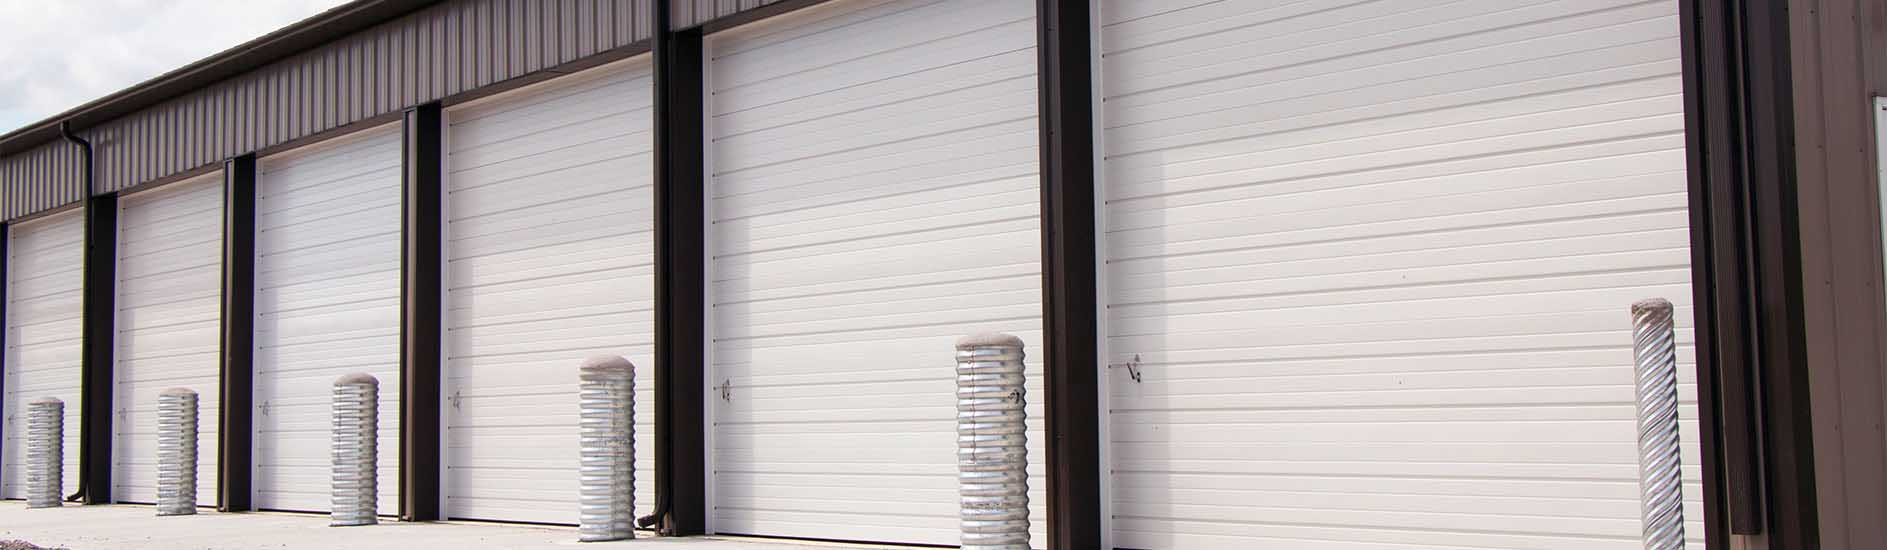 Commercial overhead garage door - Non Insulated Steel Doors